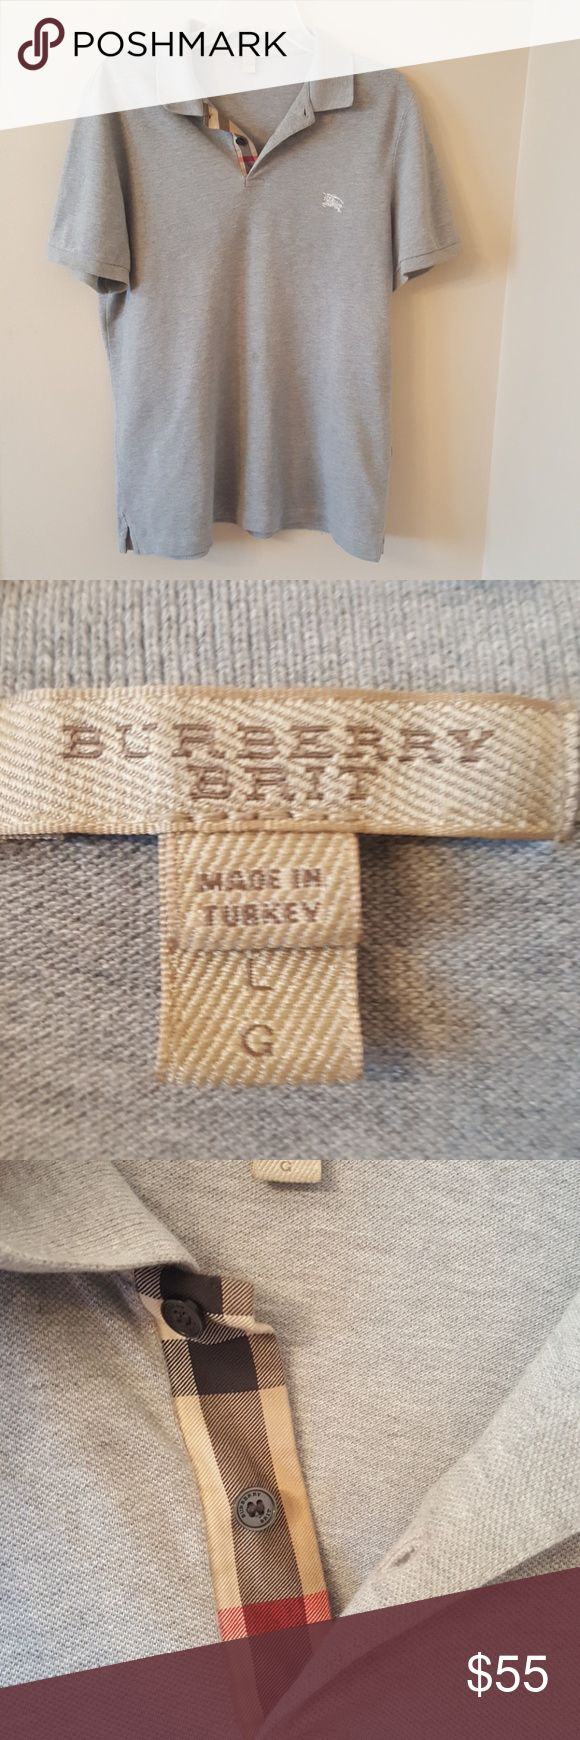 Men's Burberry Polo Shirt Beige Burberry short sleeves (light stain) shown in pic Burberry Shirts Polos